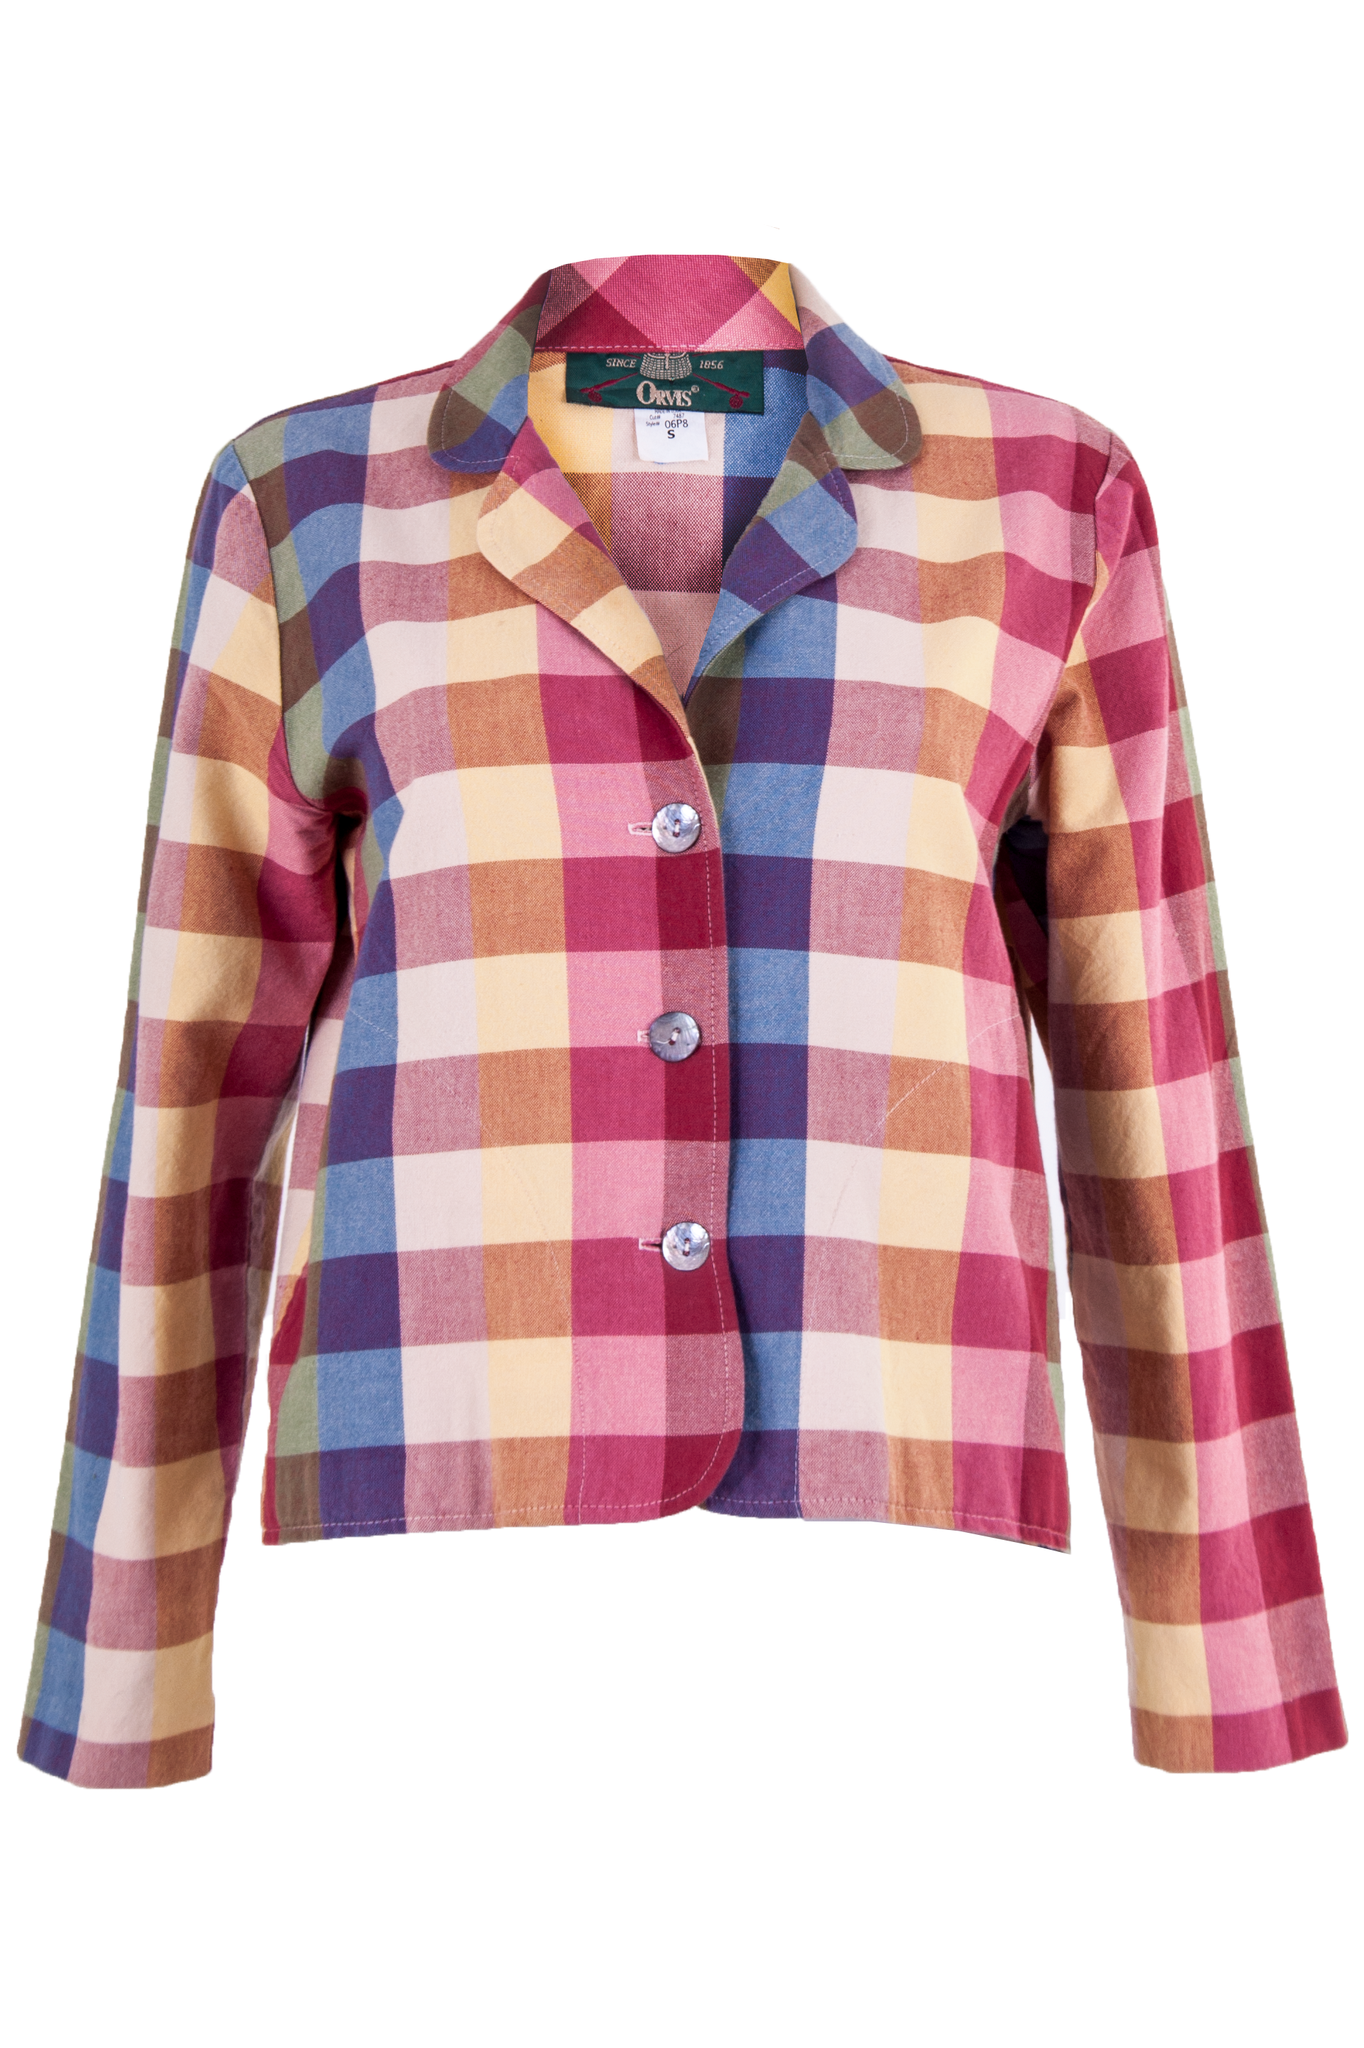 Vintage plaid blazer in multi-color